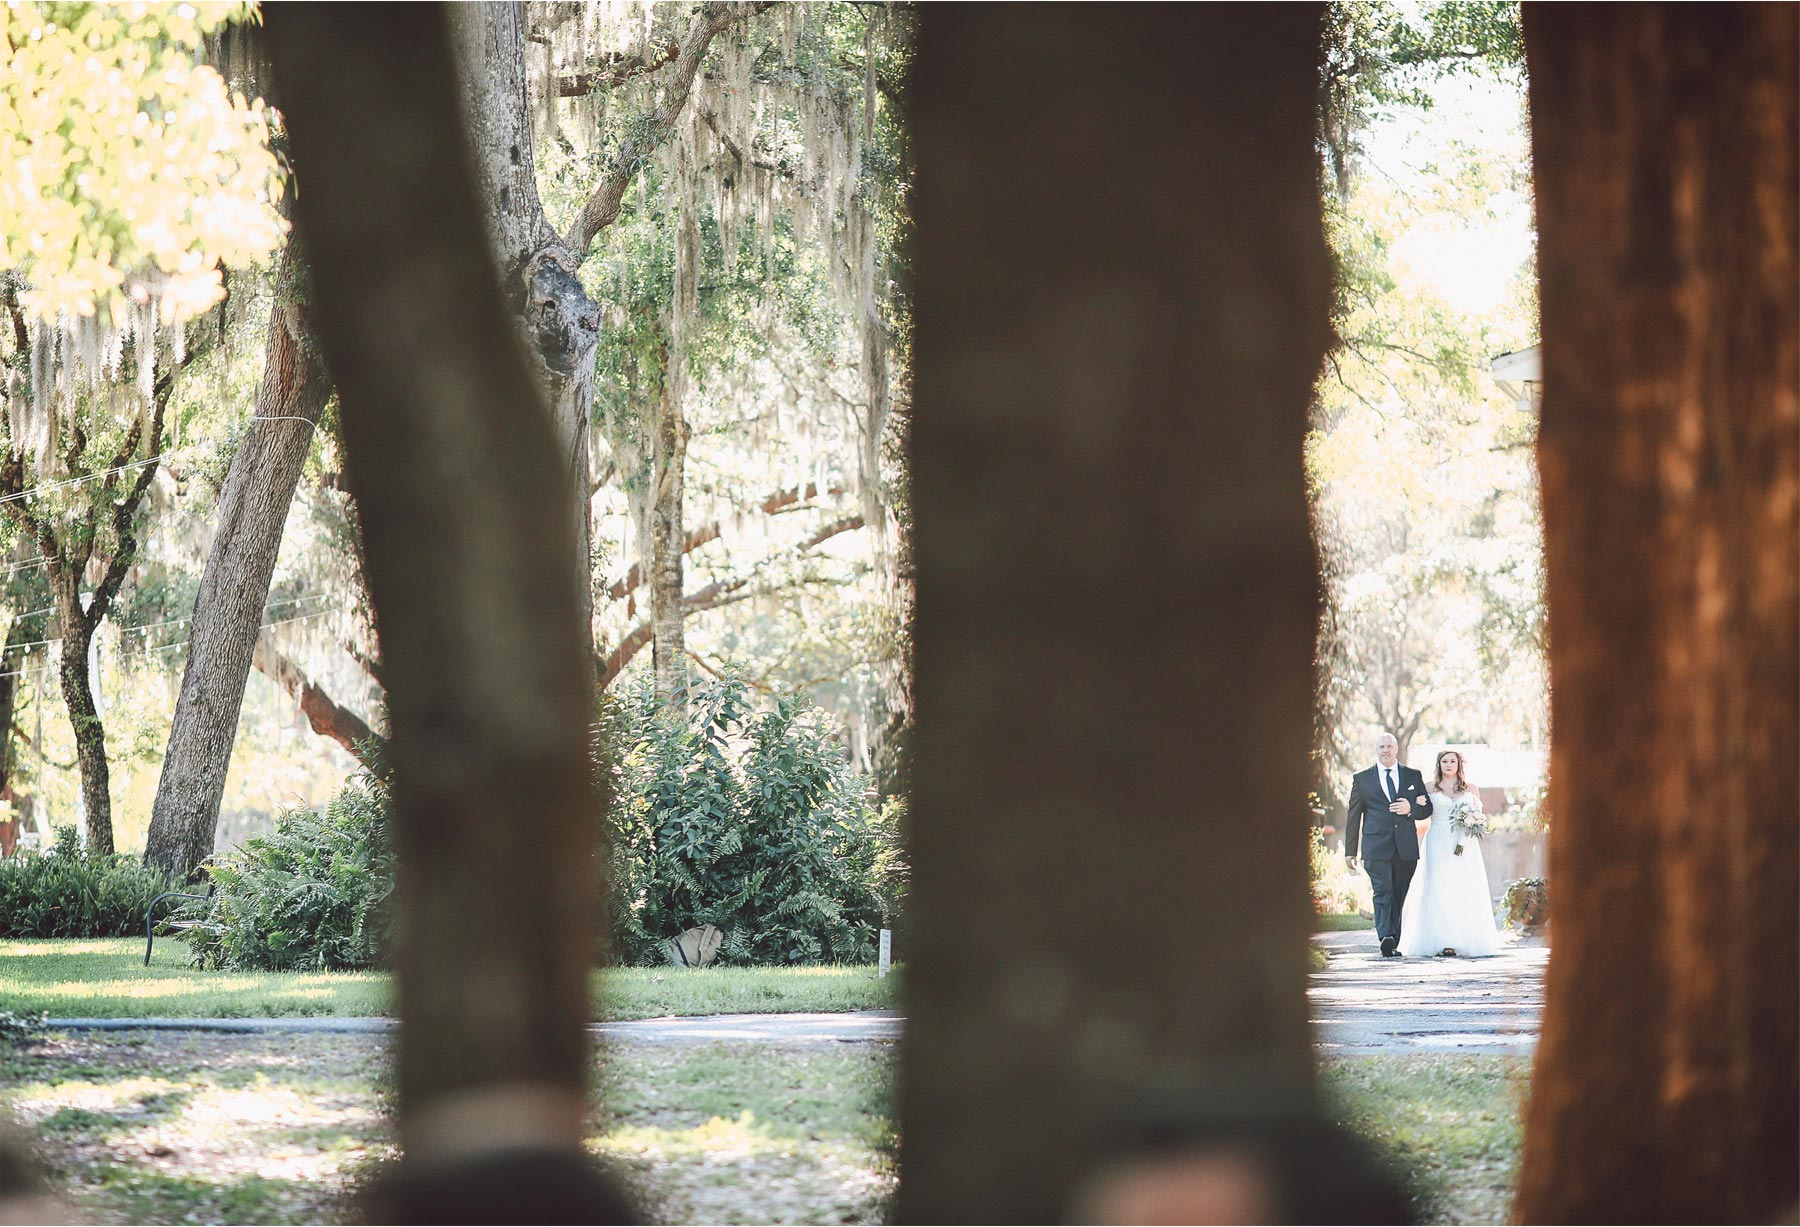 14-Brandon-Florida-Wedding-Photographer-by-Andrew-Vick-Photography-Casa-Lantana-Spring-Ceremony-Bride-Father-Parents-Processional-Vintage-Kristianna-and-Ben.jpg